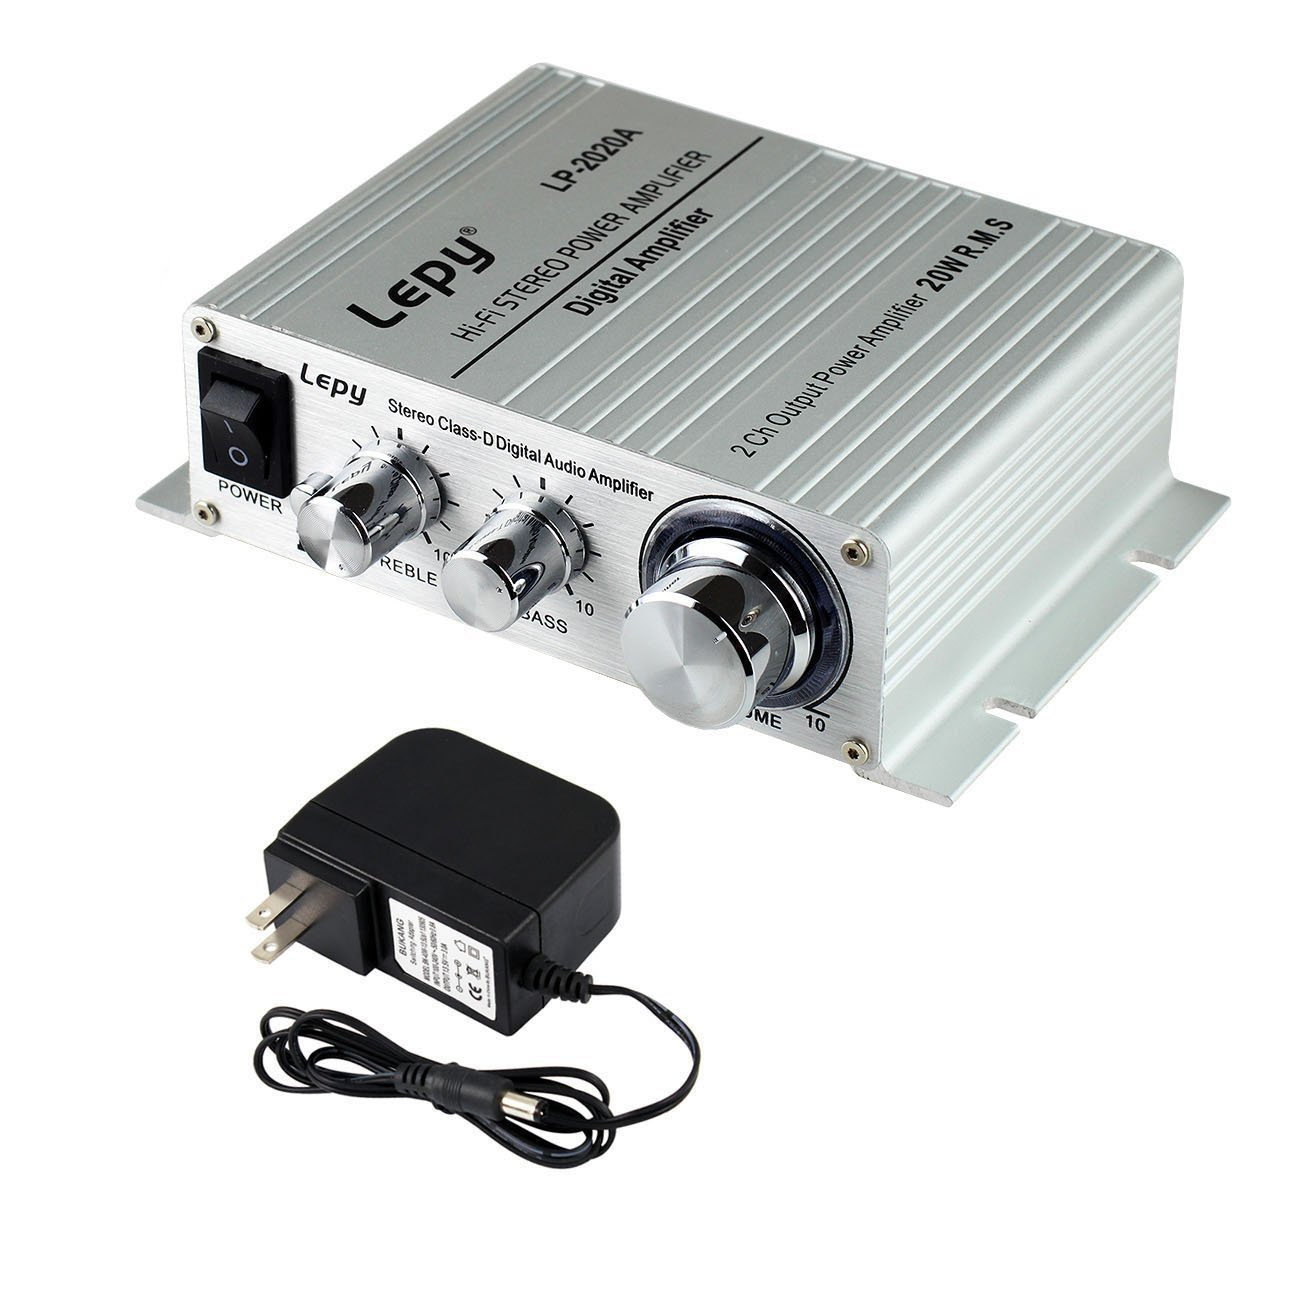 Lepy LP-2020A Power Amplifier Stereo HiFi Digital Audio Car Auto Motor Amp with 3A Power Supply Silver